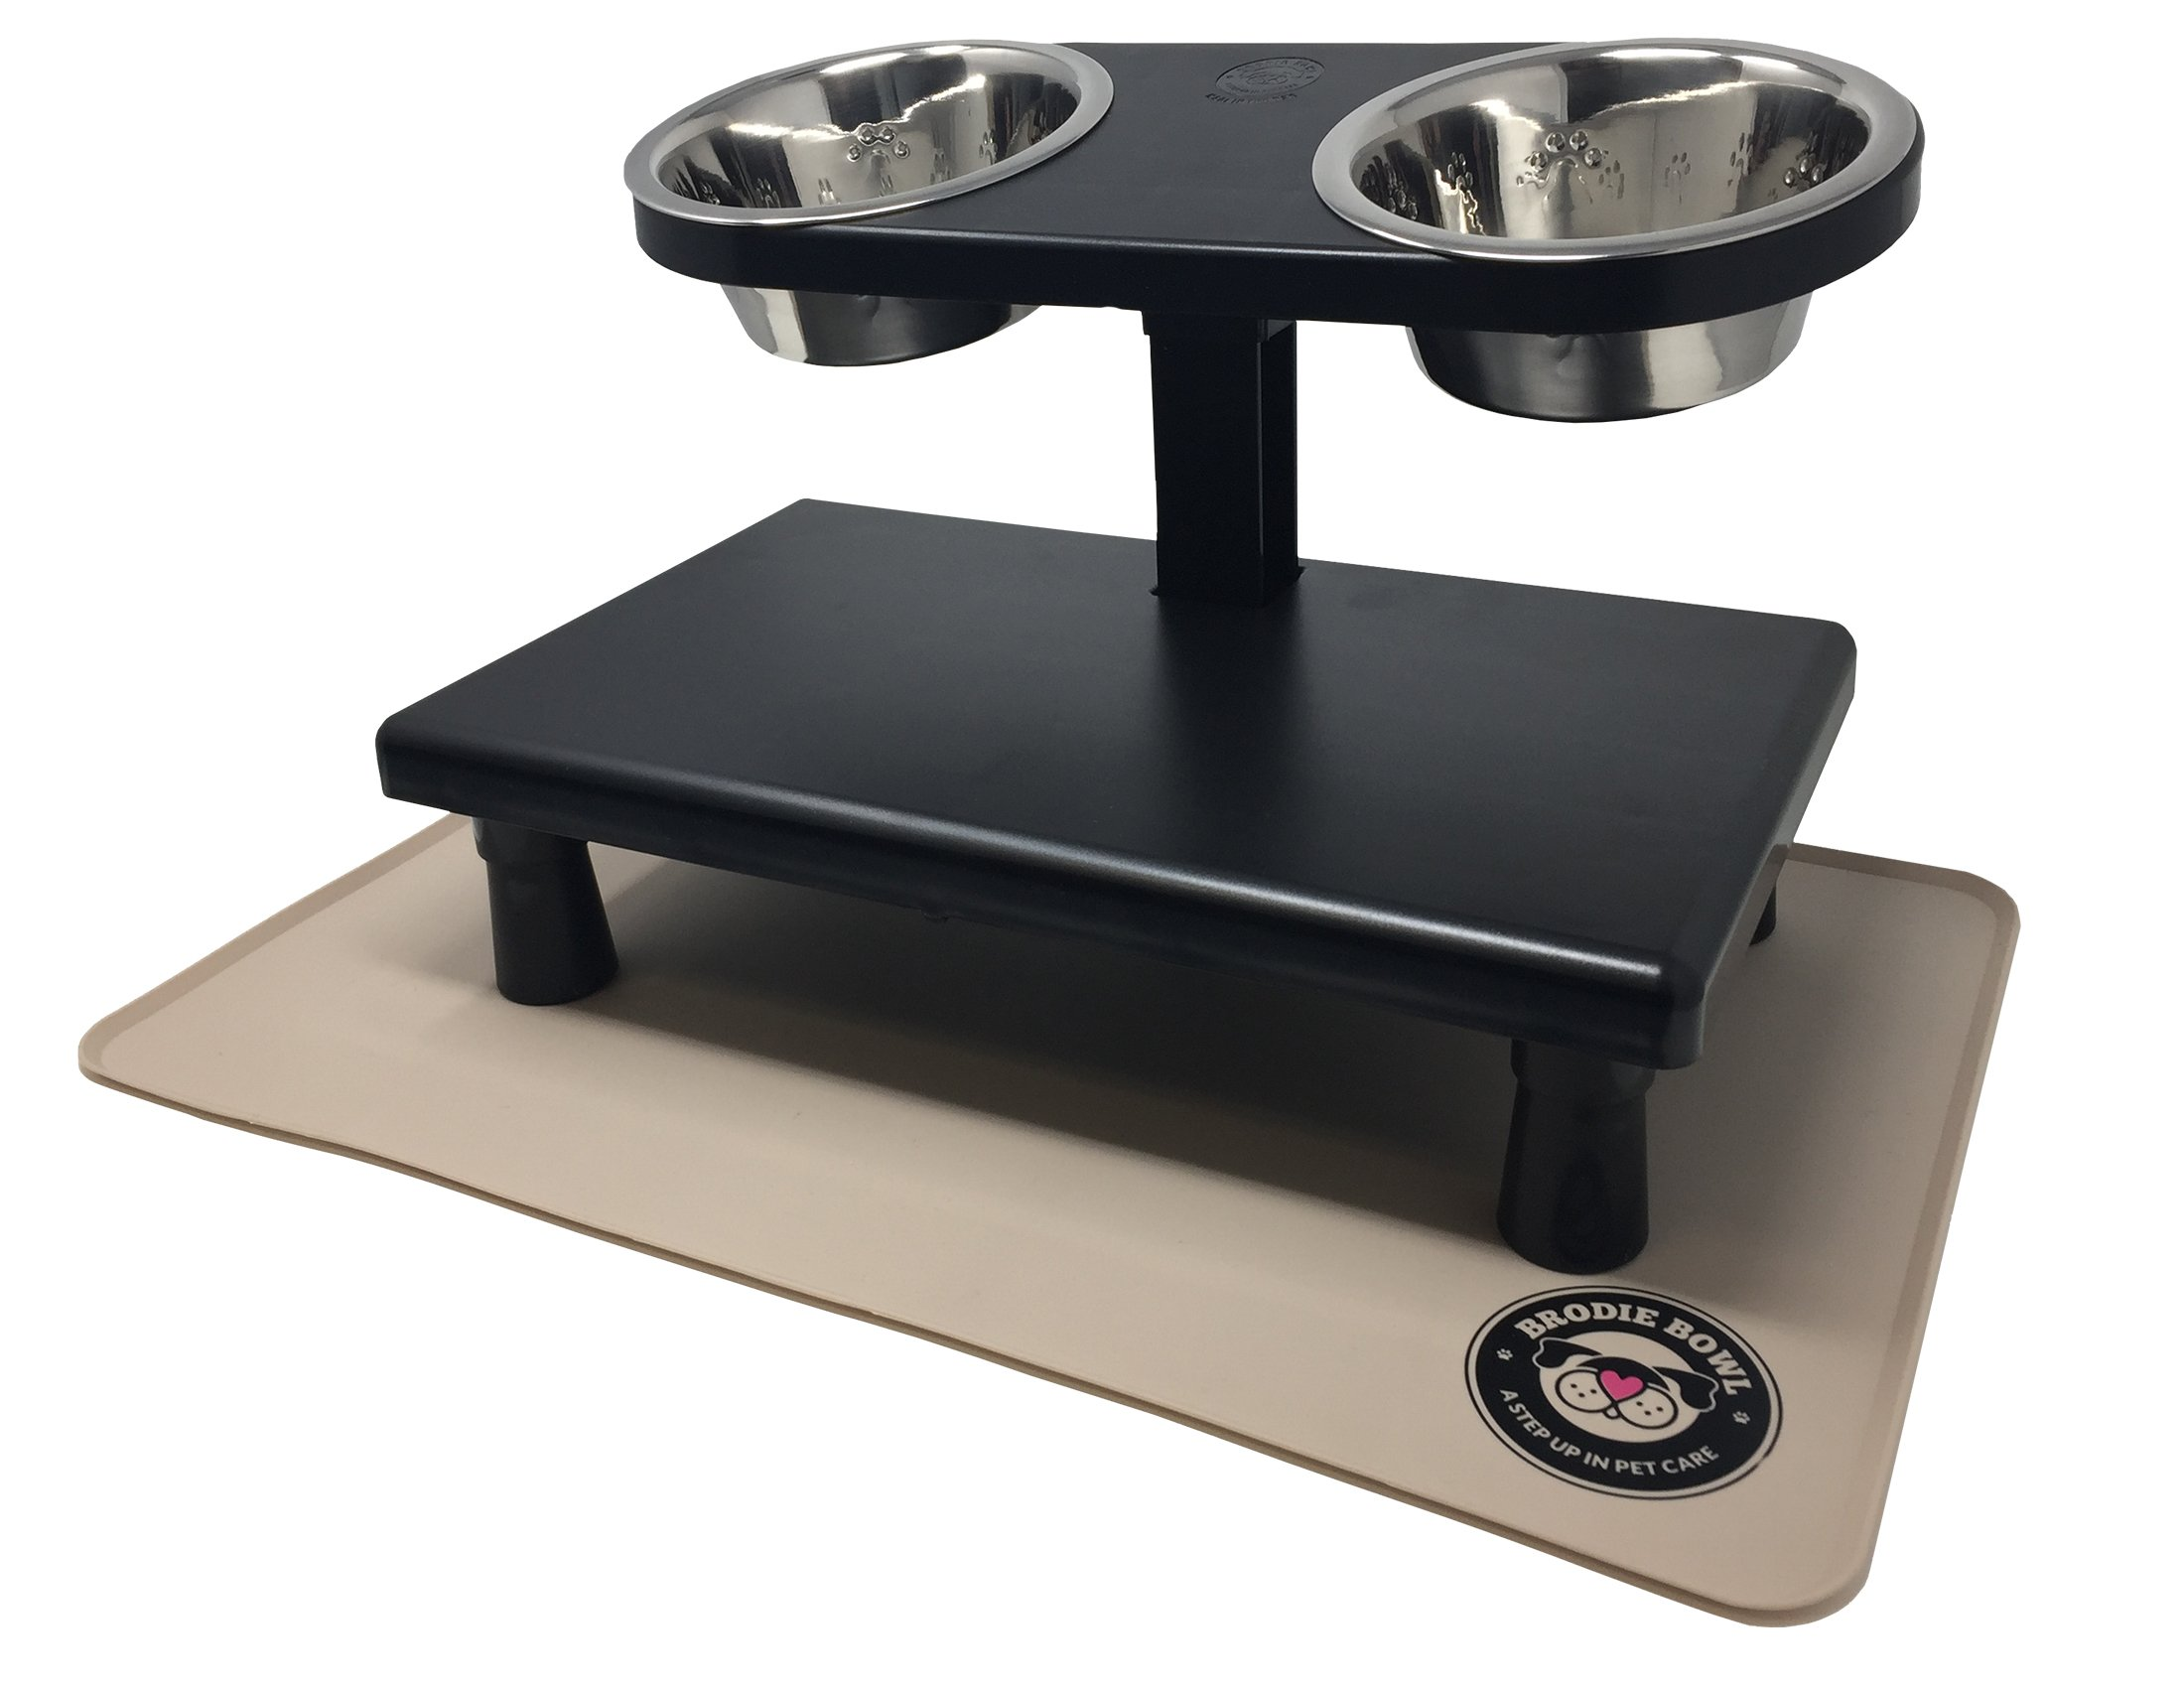 Brodie Bowl Elevated Dog Bowls Raised Pet Feeder for Small Size Pets - Includes Stainless Steel Pet Bowls + Non Slip Mat to Aid Digestion (Black)